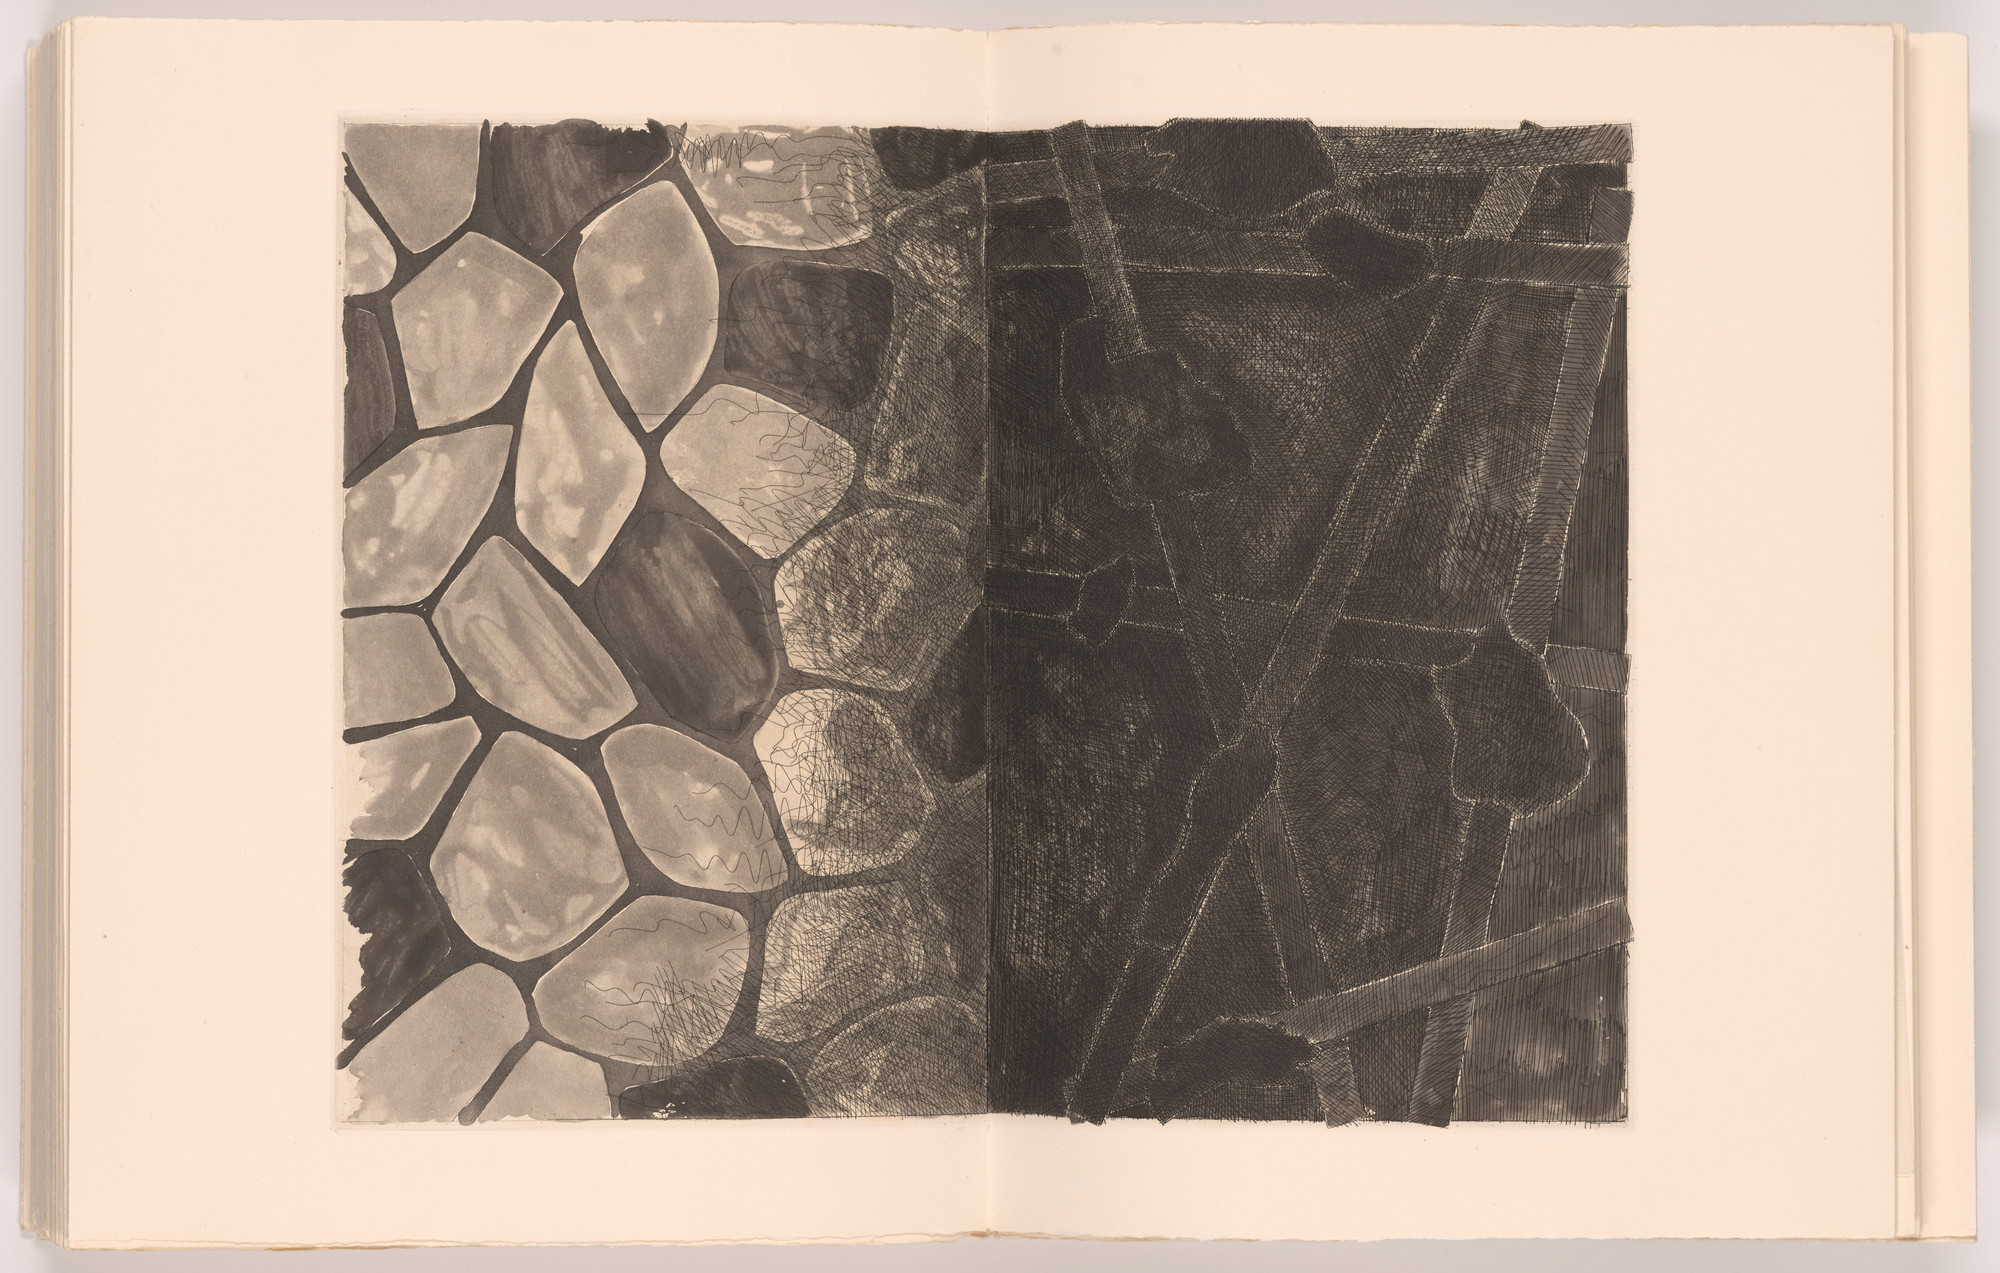 Jasper Johns. Flagstones and Casts (double page plate, folios 53 and 54) from Foirades/Fizzles. 1975–76, published 1976